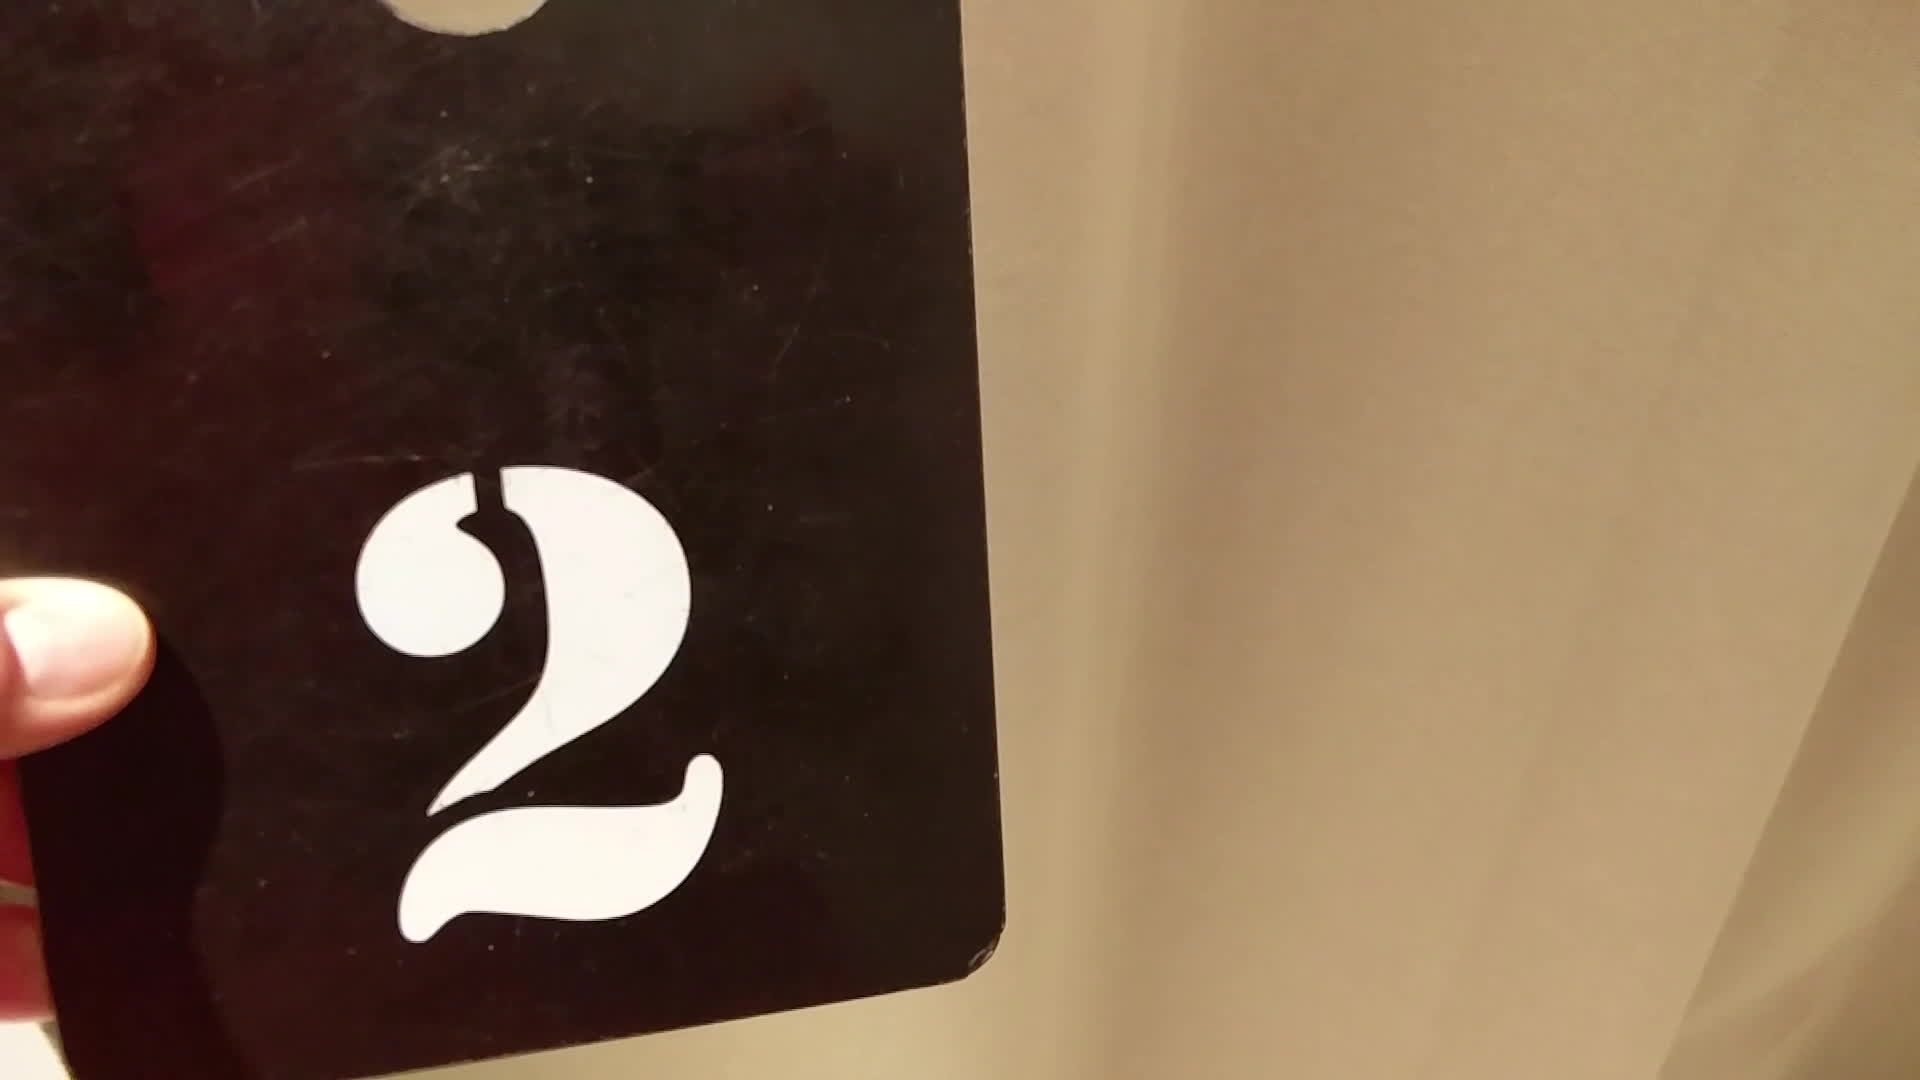 crappydesign, Fitting room number tag GIFs